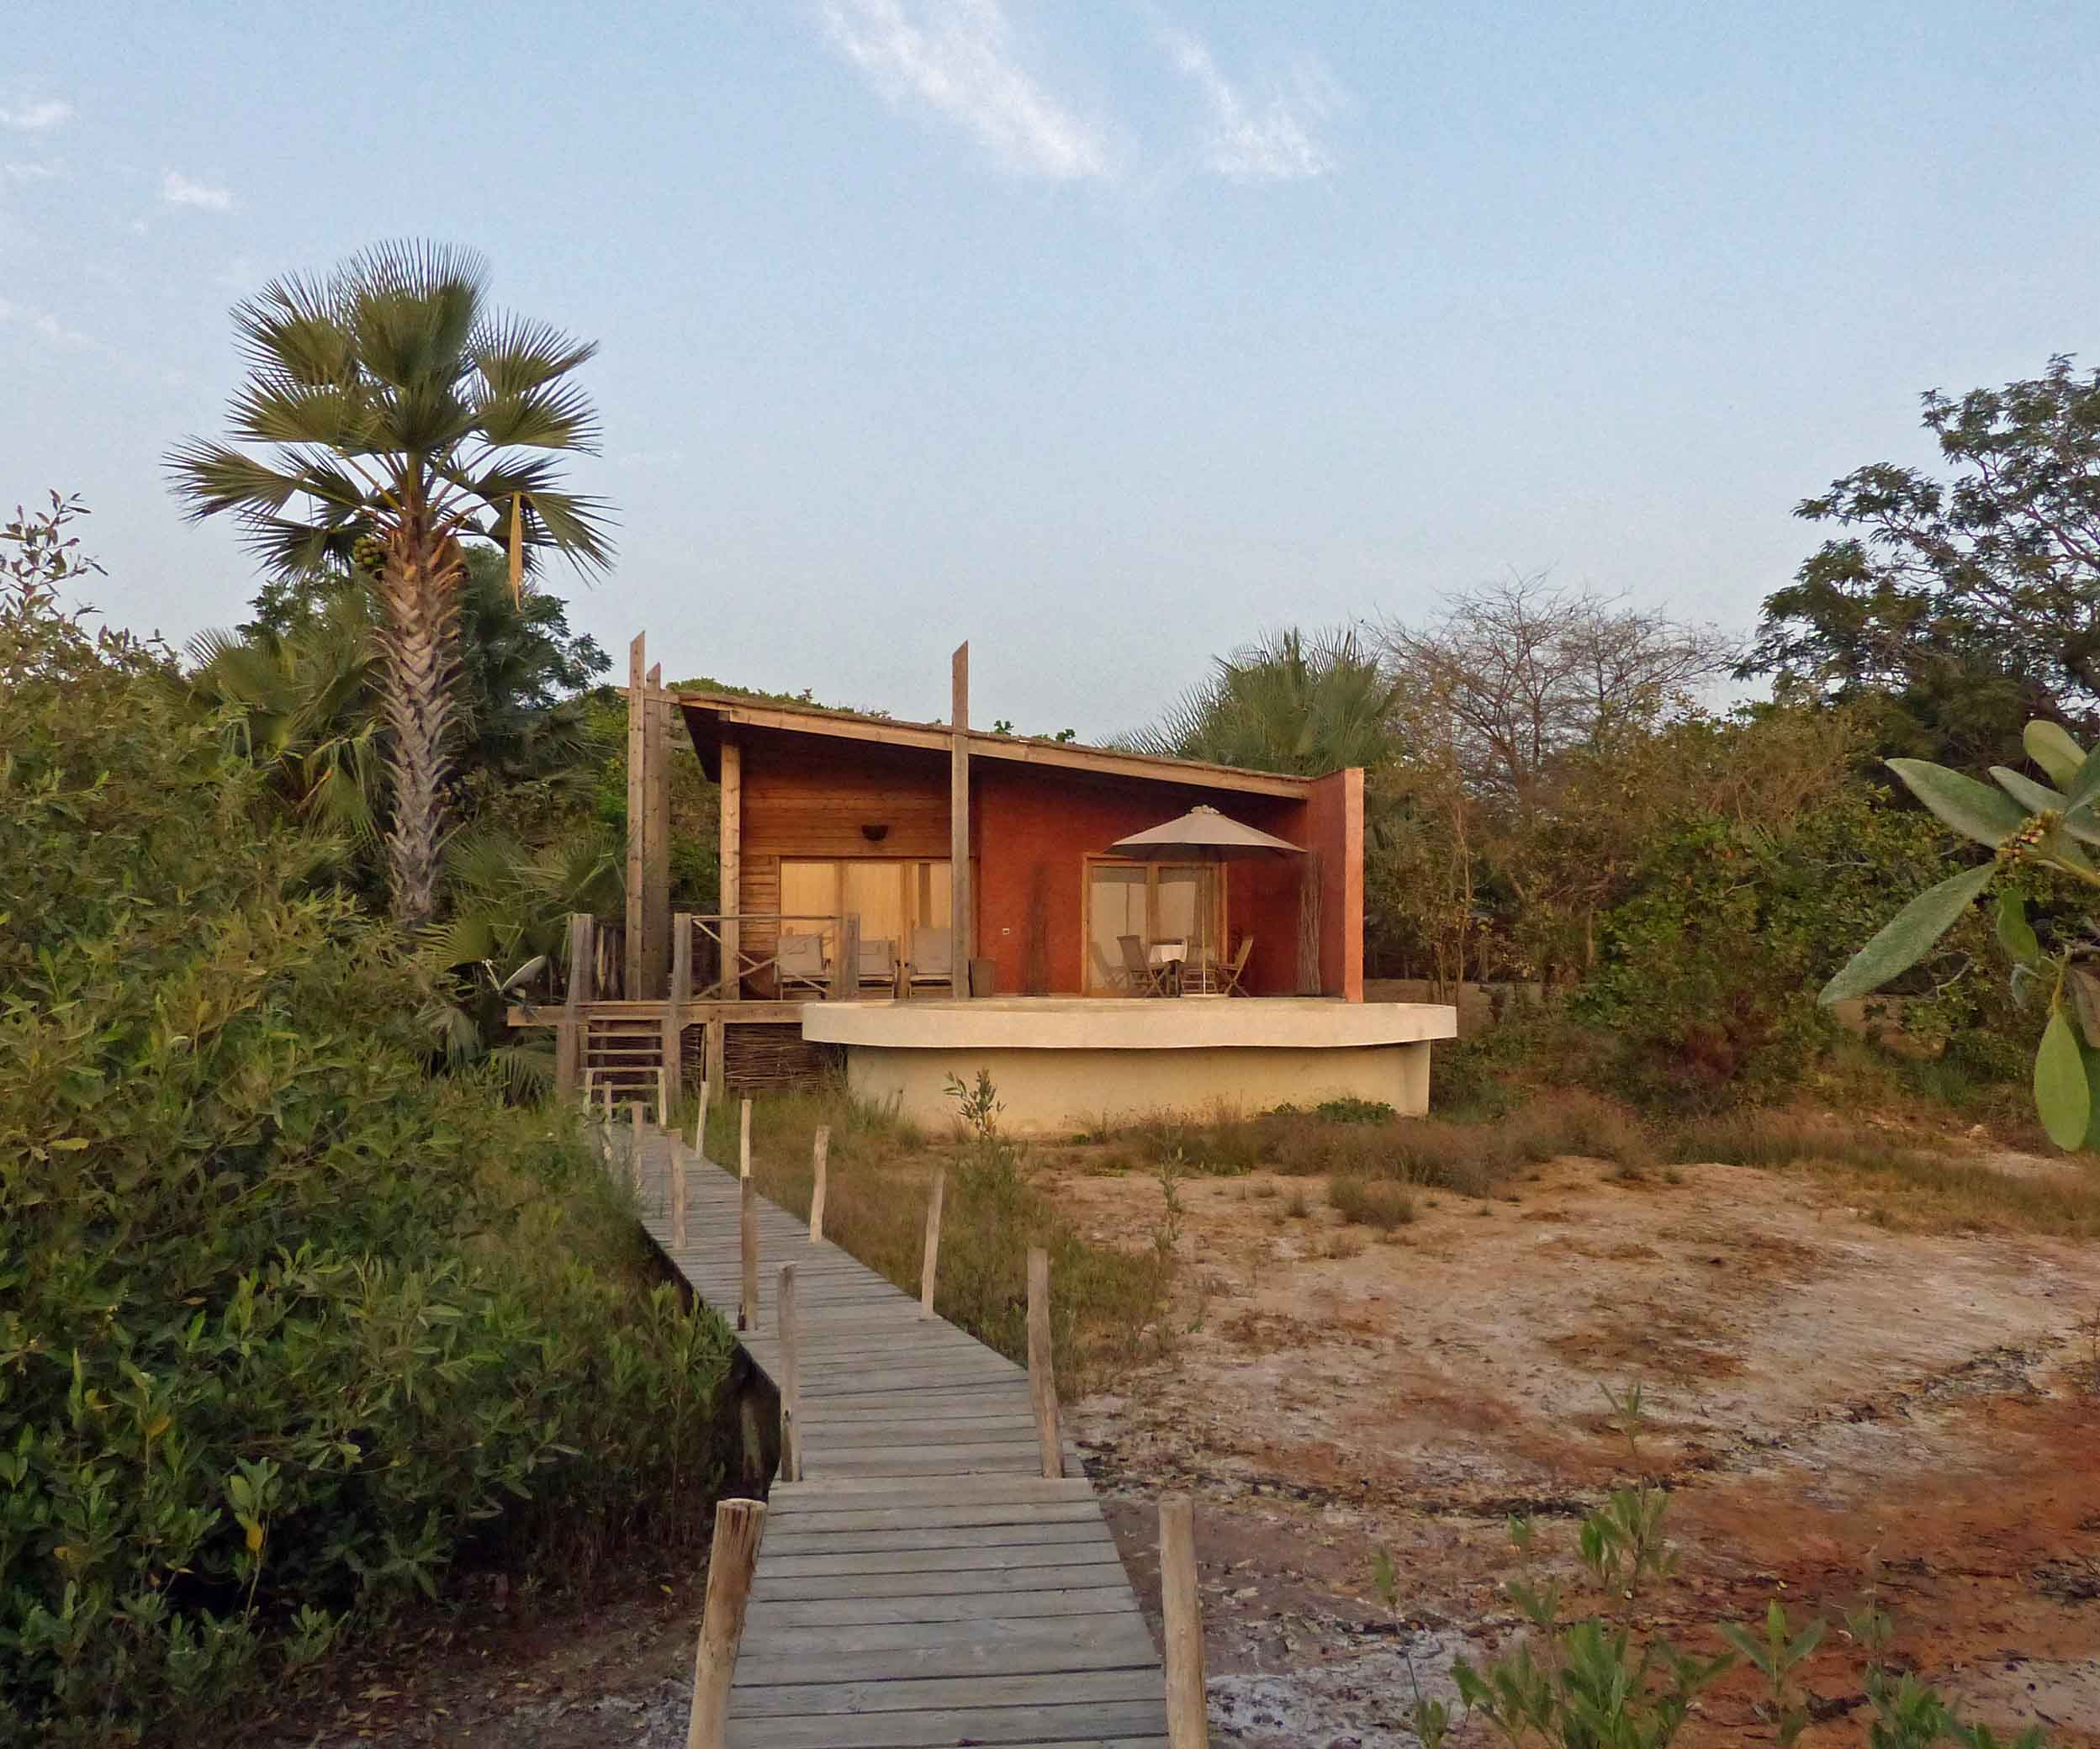 Boardwalk leading to a small bungalow